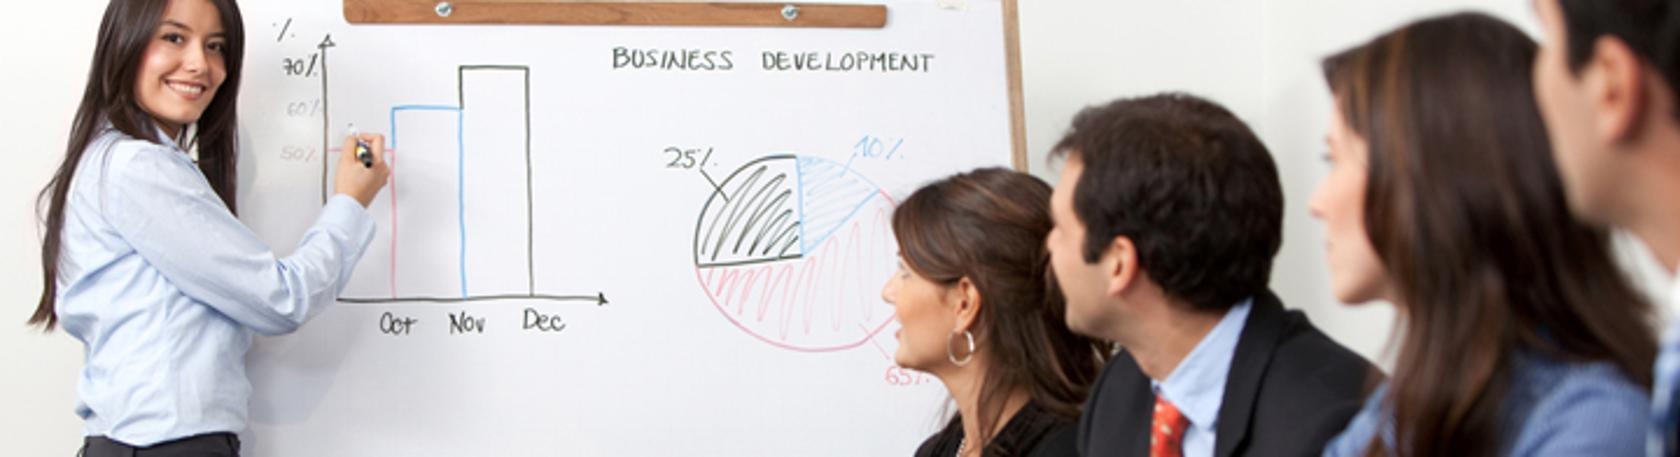 corporate coursework development Corporate education uci corporate training is your go-to provider to help with workforce development issues multiple courses) curriculum development and design.